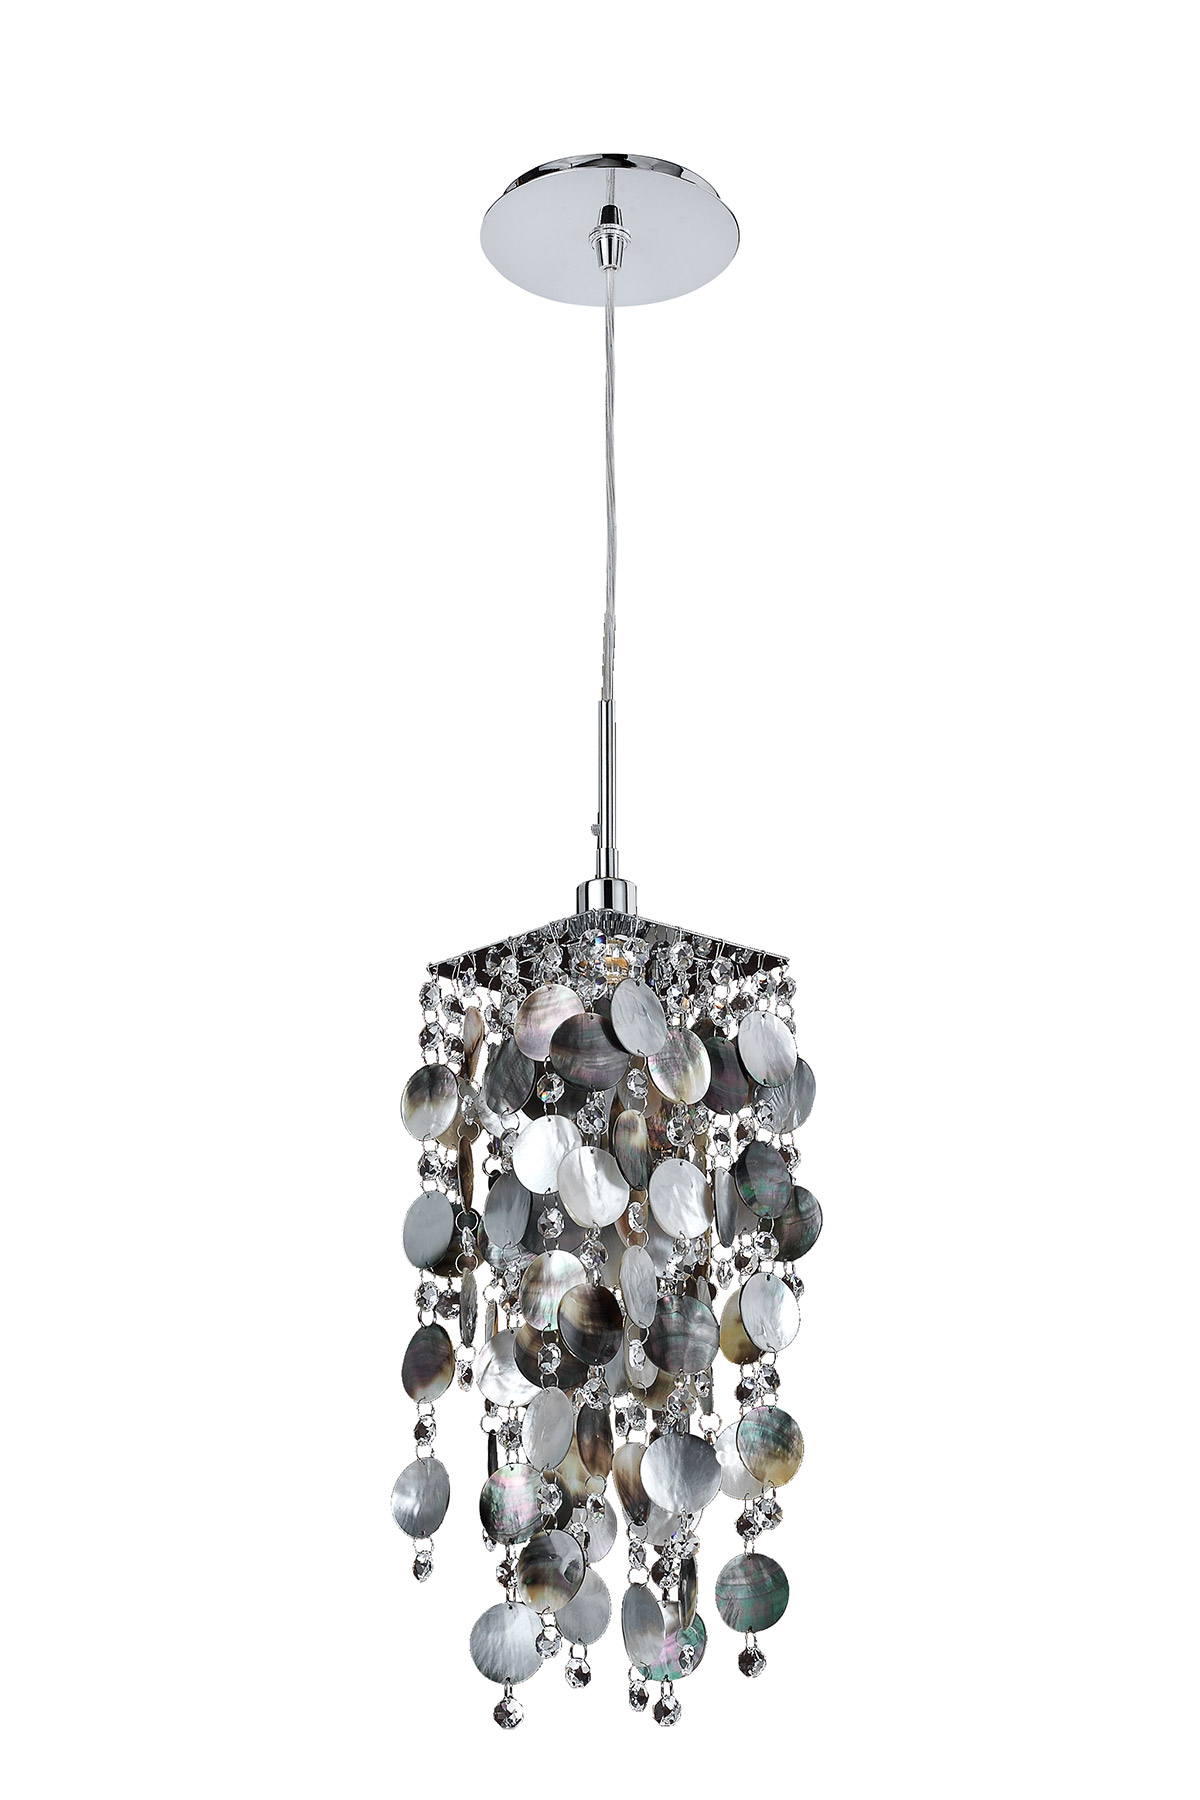 Cityscape Pendant By Glow Lighting